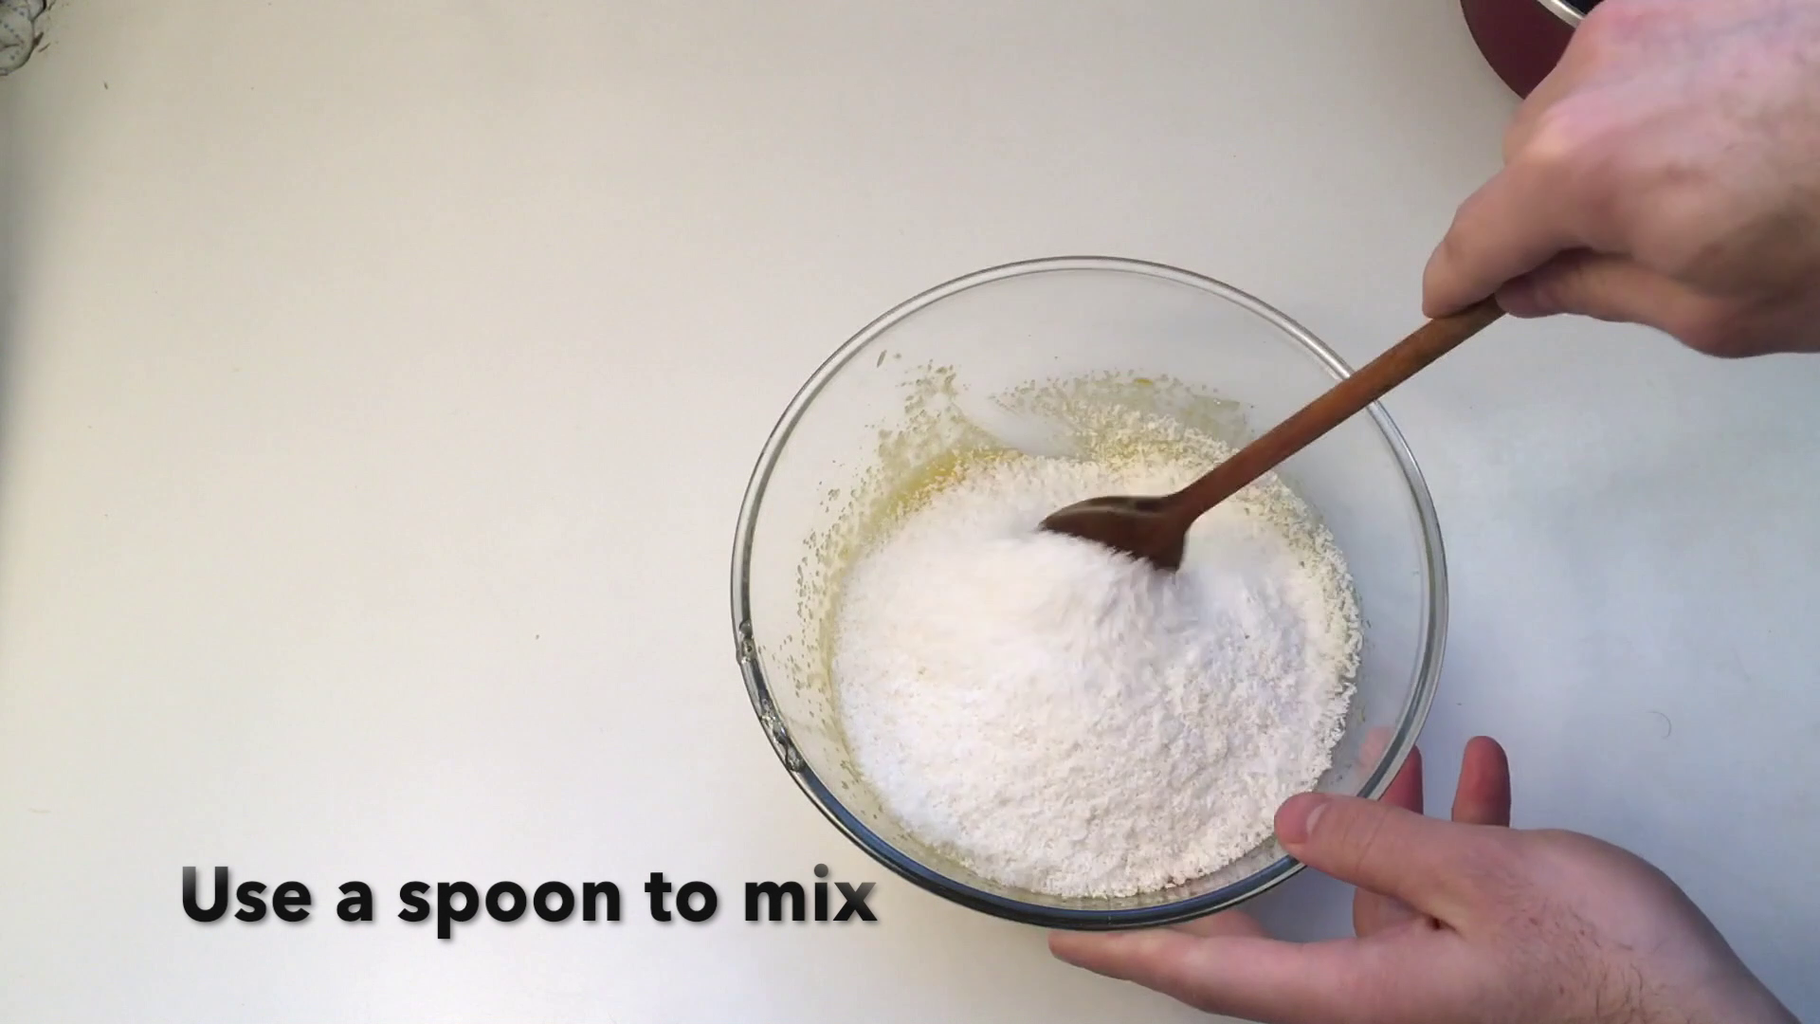 Mixing the Ingredients